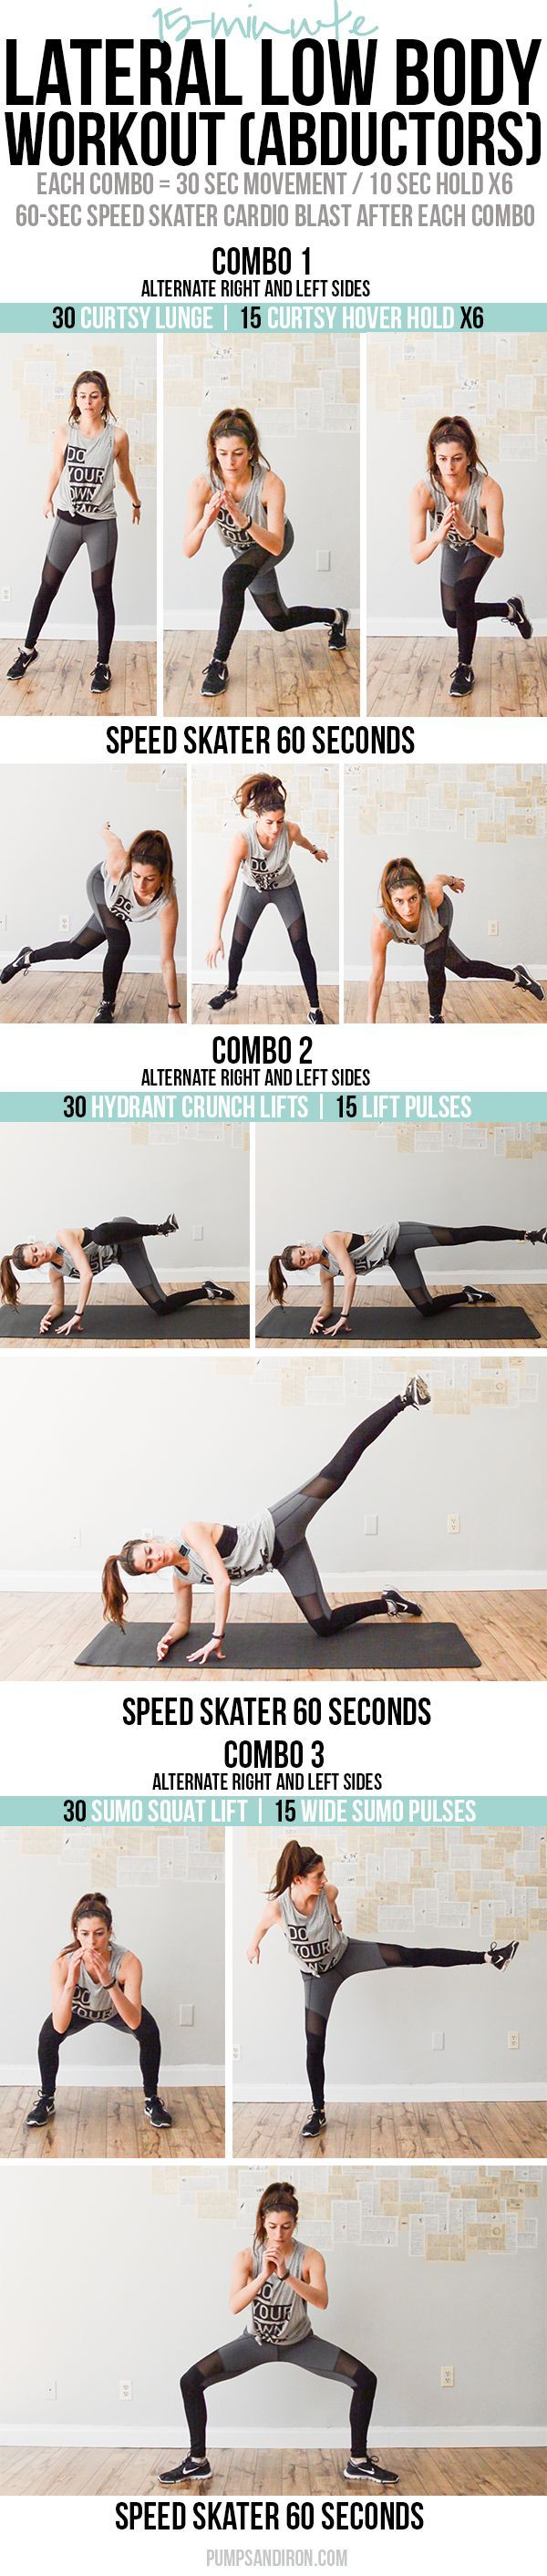 15-Minute Lateral Low Body Workout (focus on abductors)